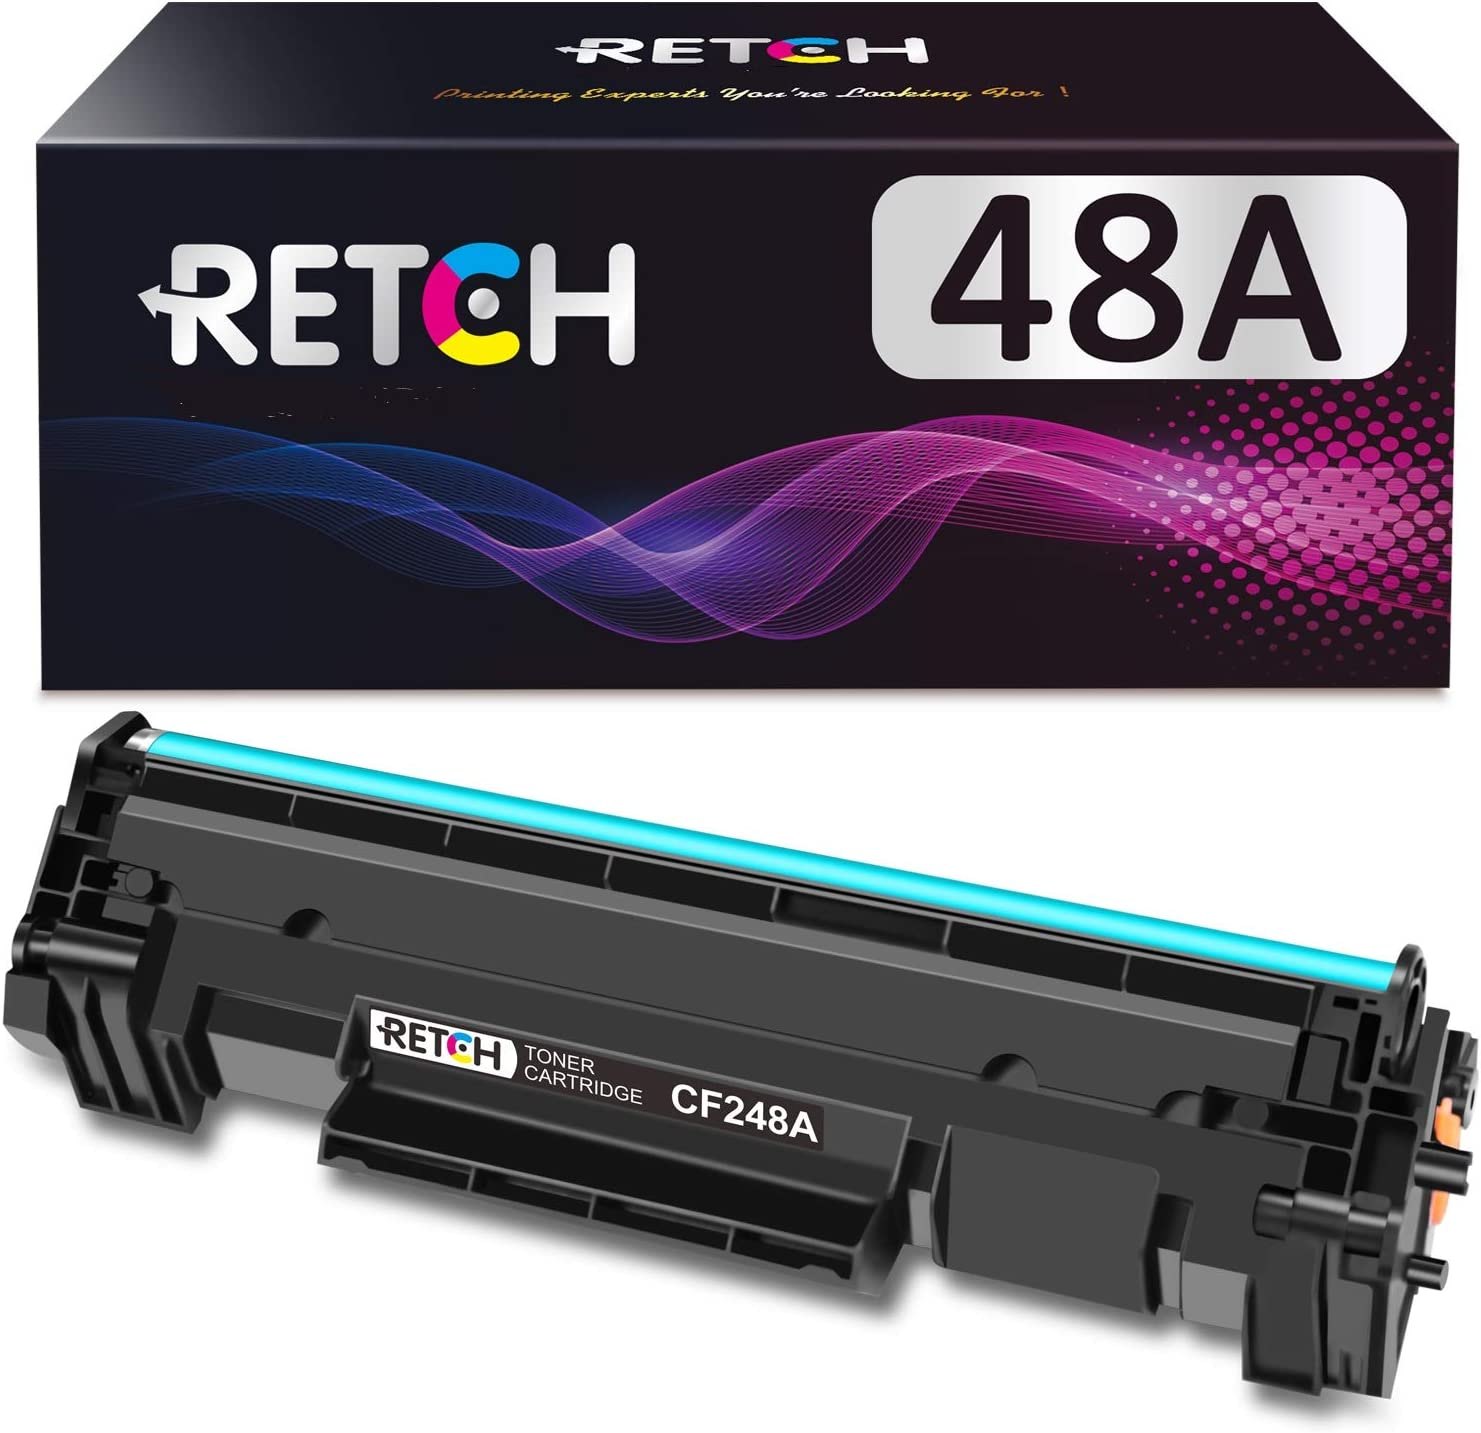 RETCH Compatible 48A Toner Cartridge Replacement for HP 48A CF248A for HP Laserjet Pro M15w M15a M16w M16a Laserjet Pro MFP M29w M29a M28w M28a Printer (1 Black)